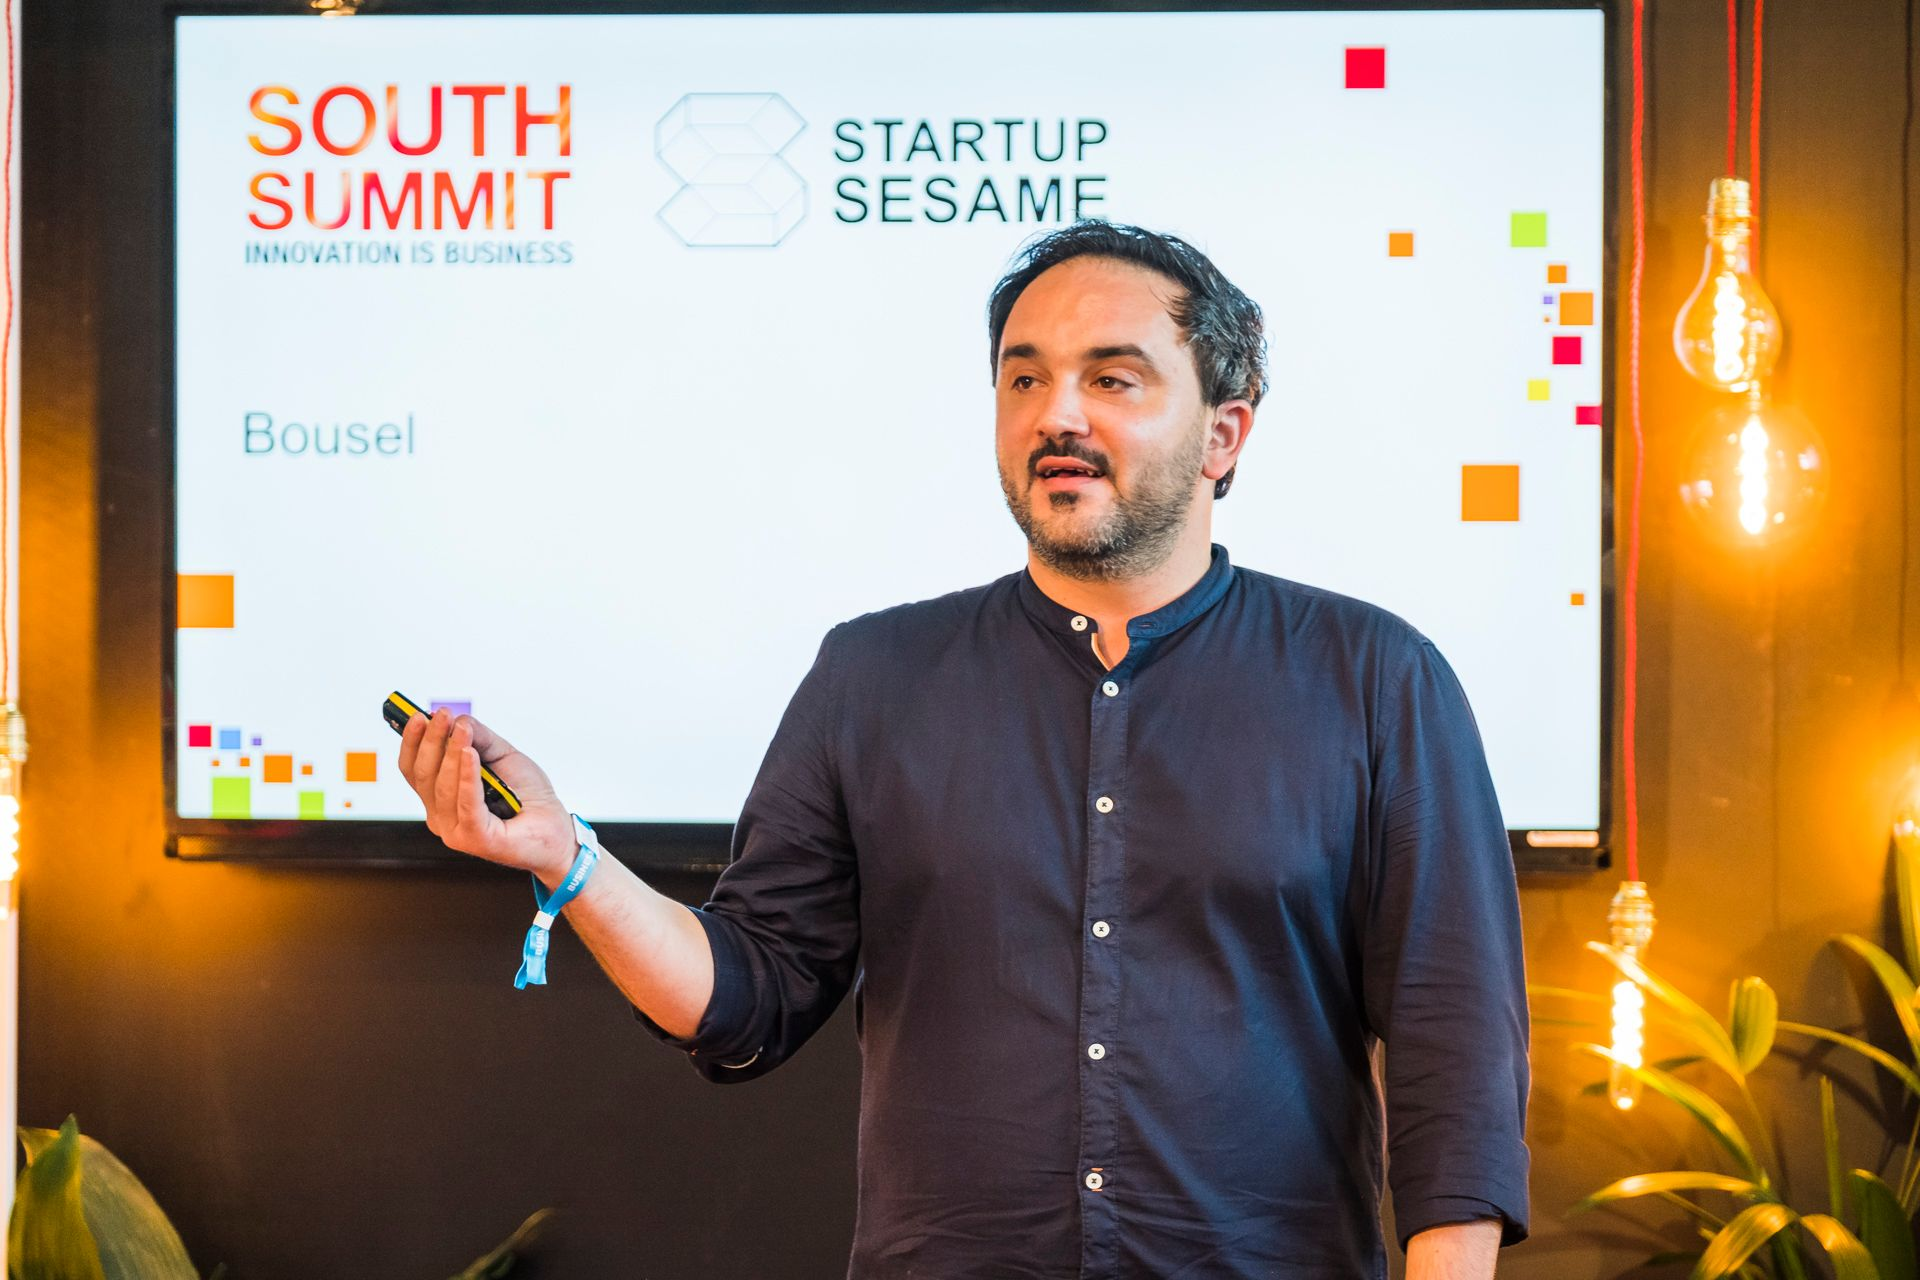 Ben Costantini at South Summit 2019